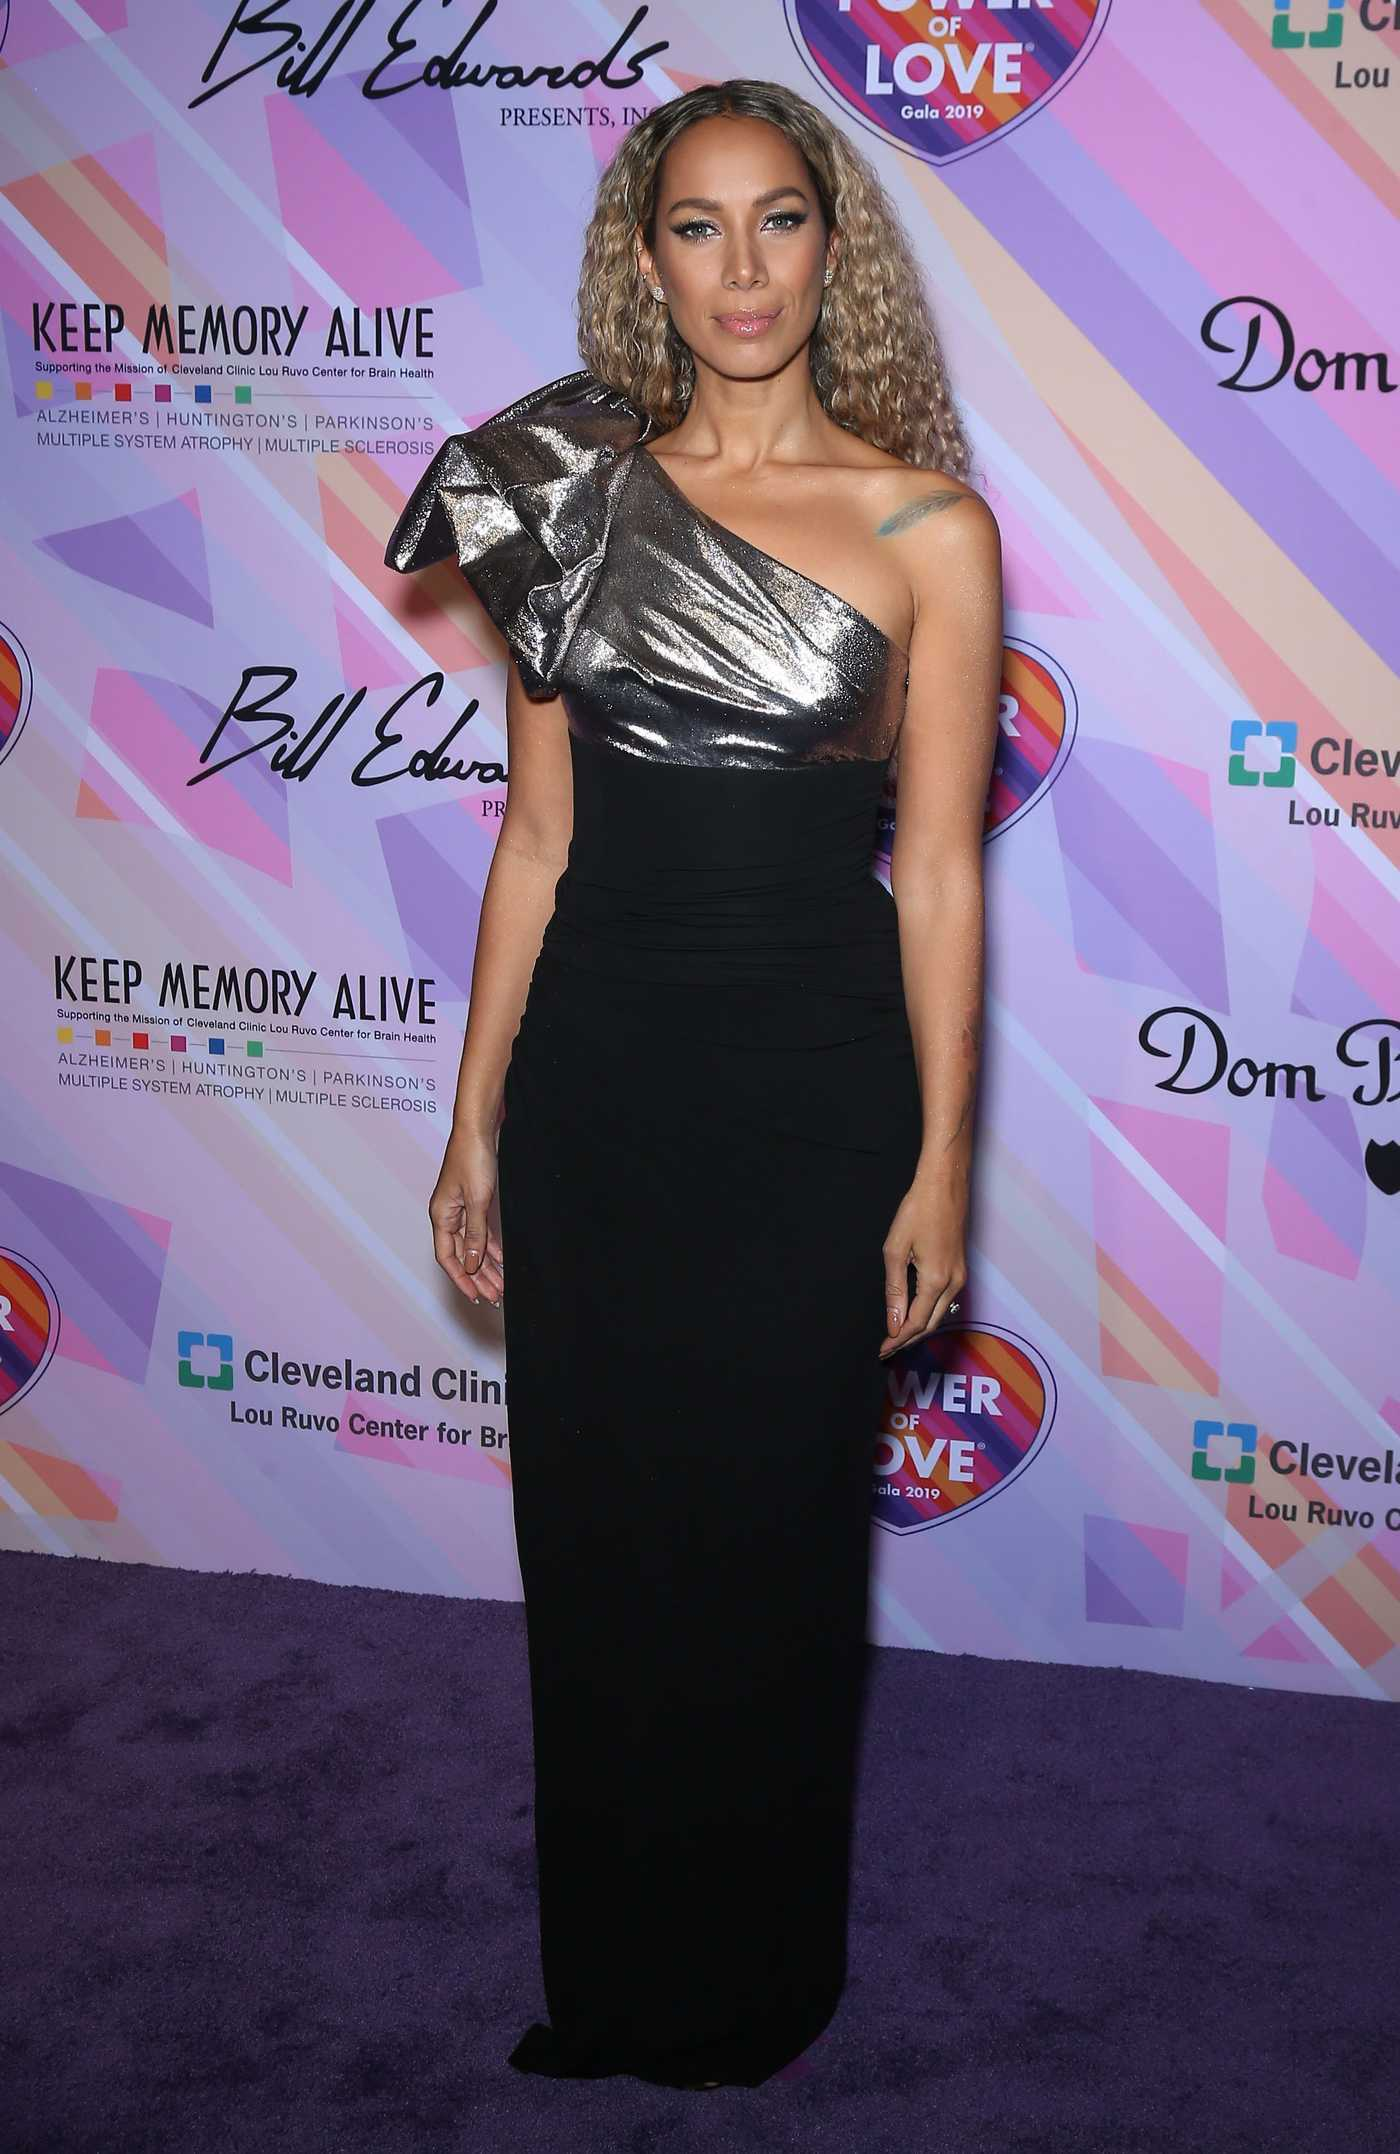 Leona Lewis Attends the 23rd Annual Power of Love Gala in Las Vegas 03/16/2019